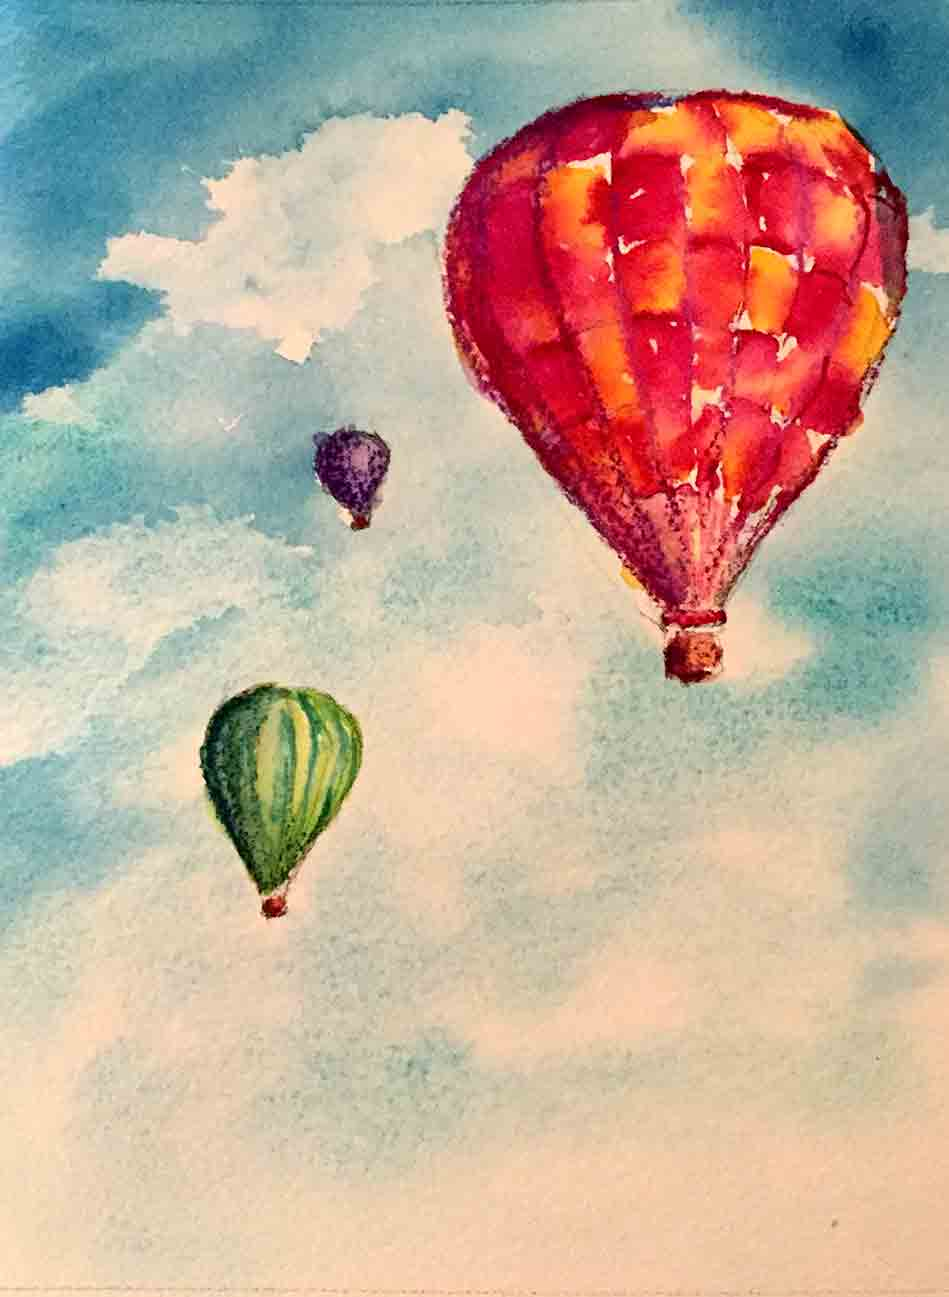 Hot Air Balloon Watercolor